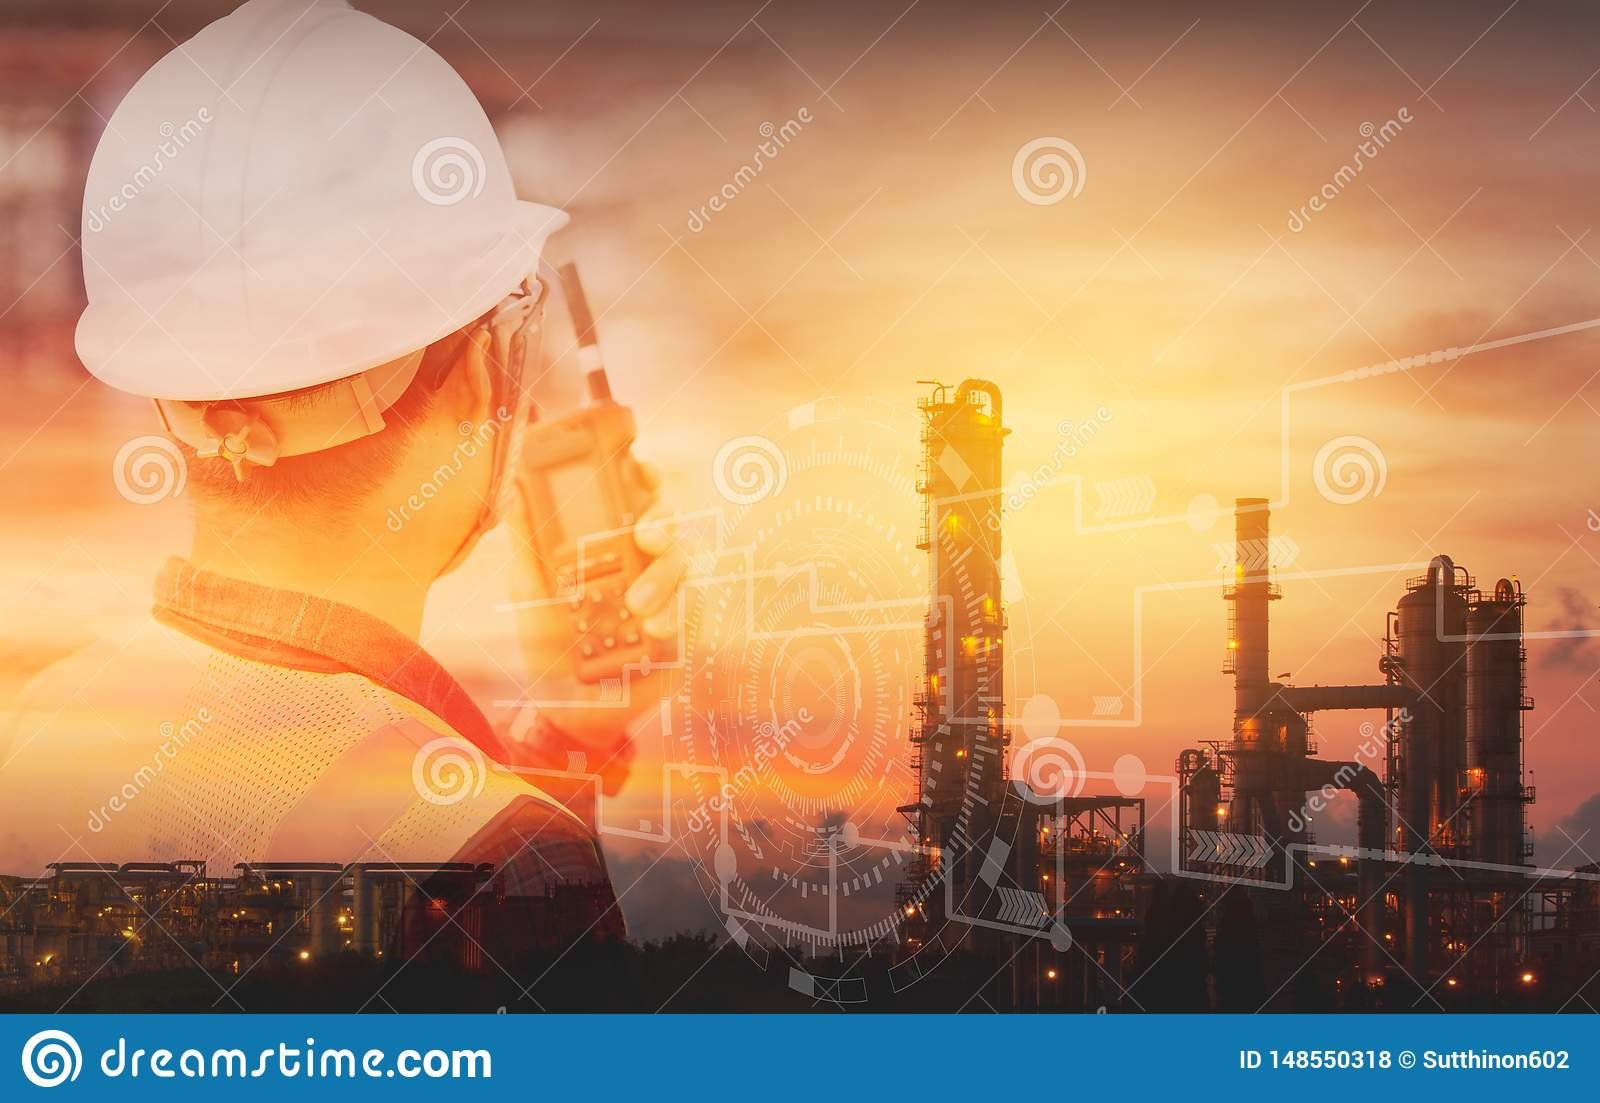 Double exposure of Engineer with safety helmet with oil refinery industry plant background. Industrial instruments in the factory